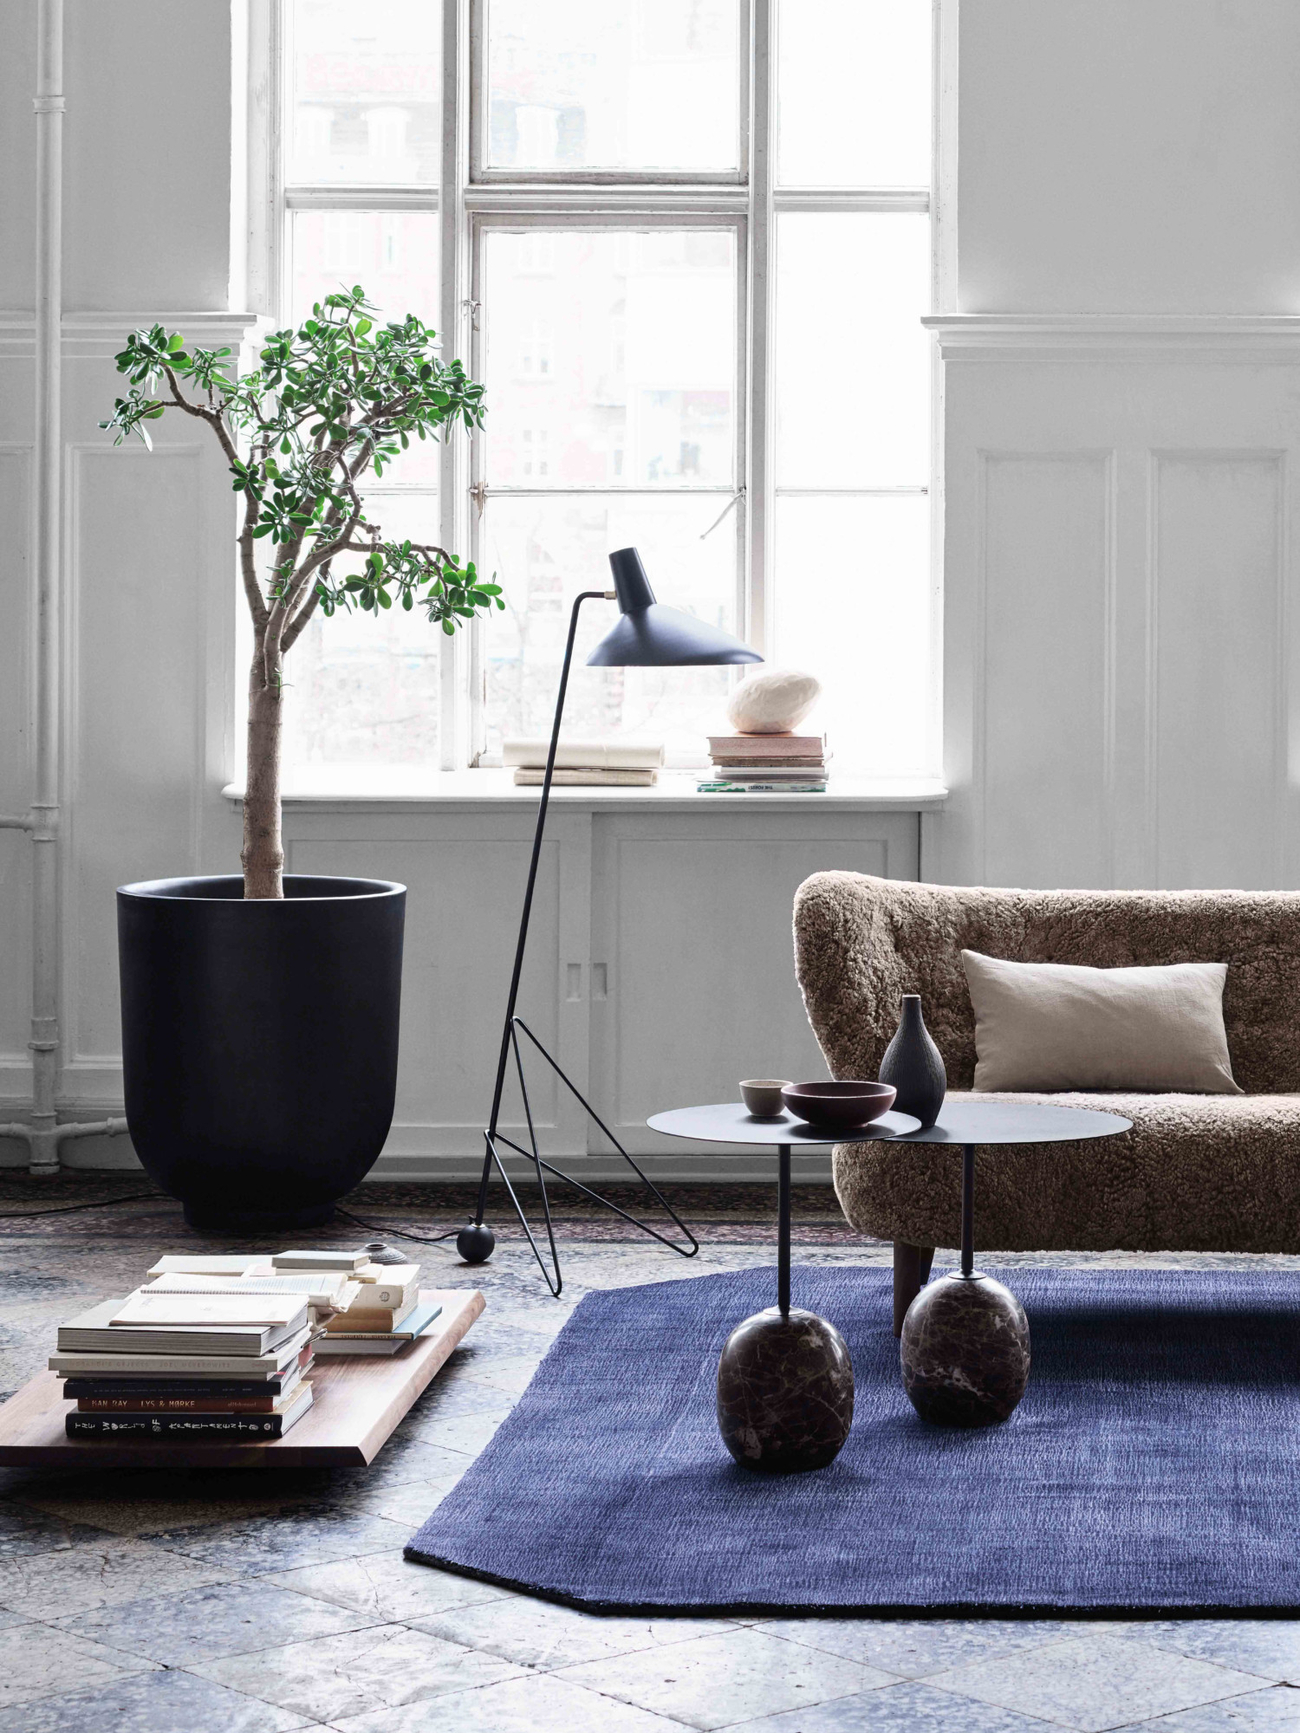 https://www.fundesign.nl/media/catalog/product/a/t/atd_lifestyle_2020_little-petra_vb2_tripod_hm8_lato-ln8_ln9_planter_sc44_formakami_jh18_the-moor_jh18_web_closeup-1500x2000.jpg